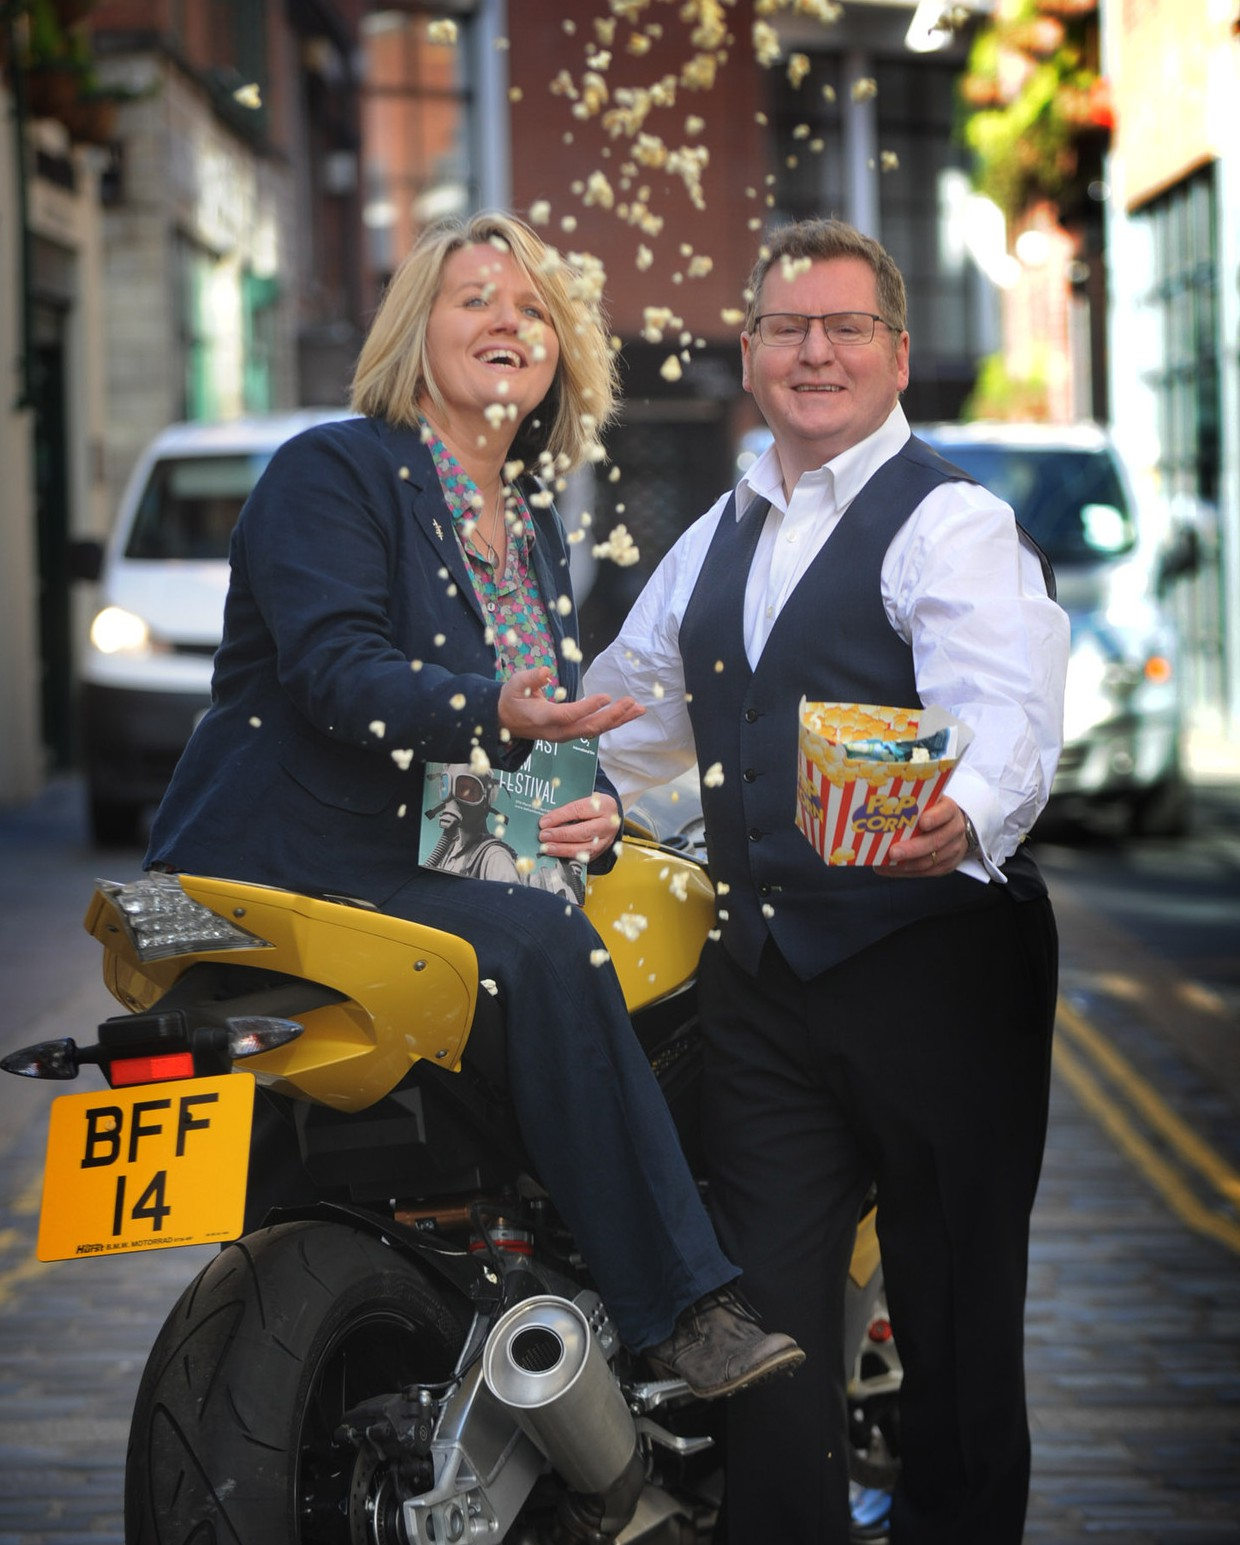 Launch of Belfast Film Festival